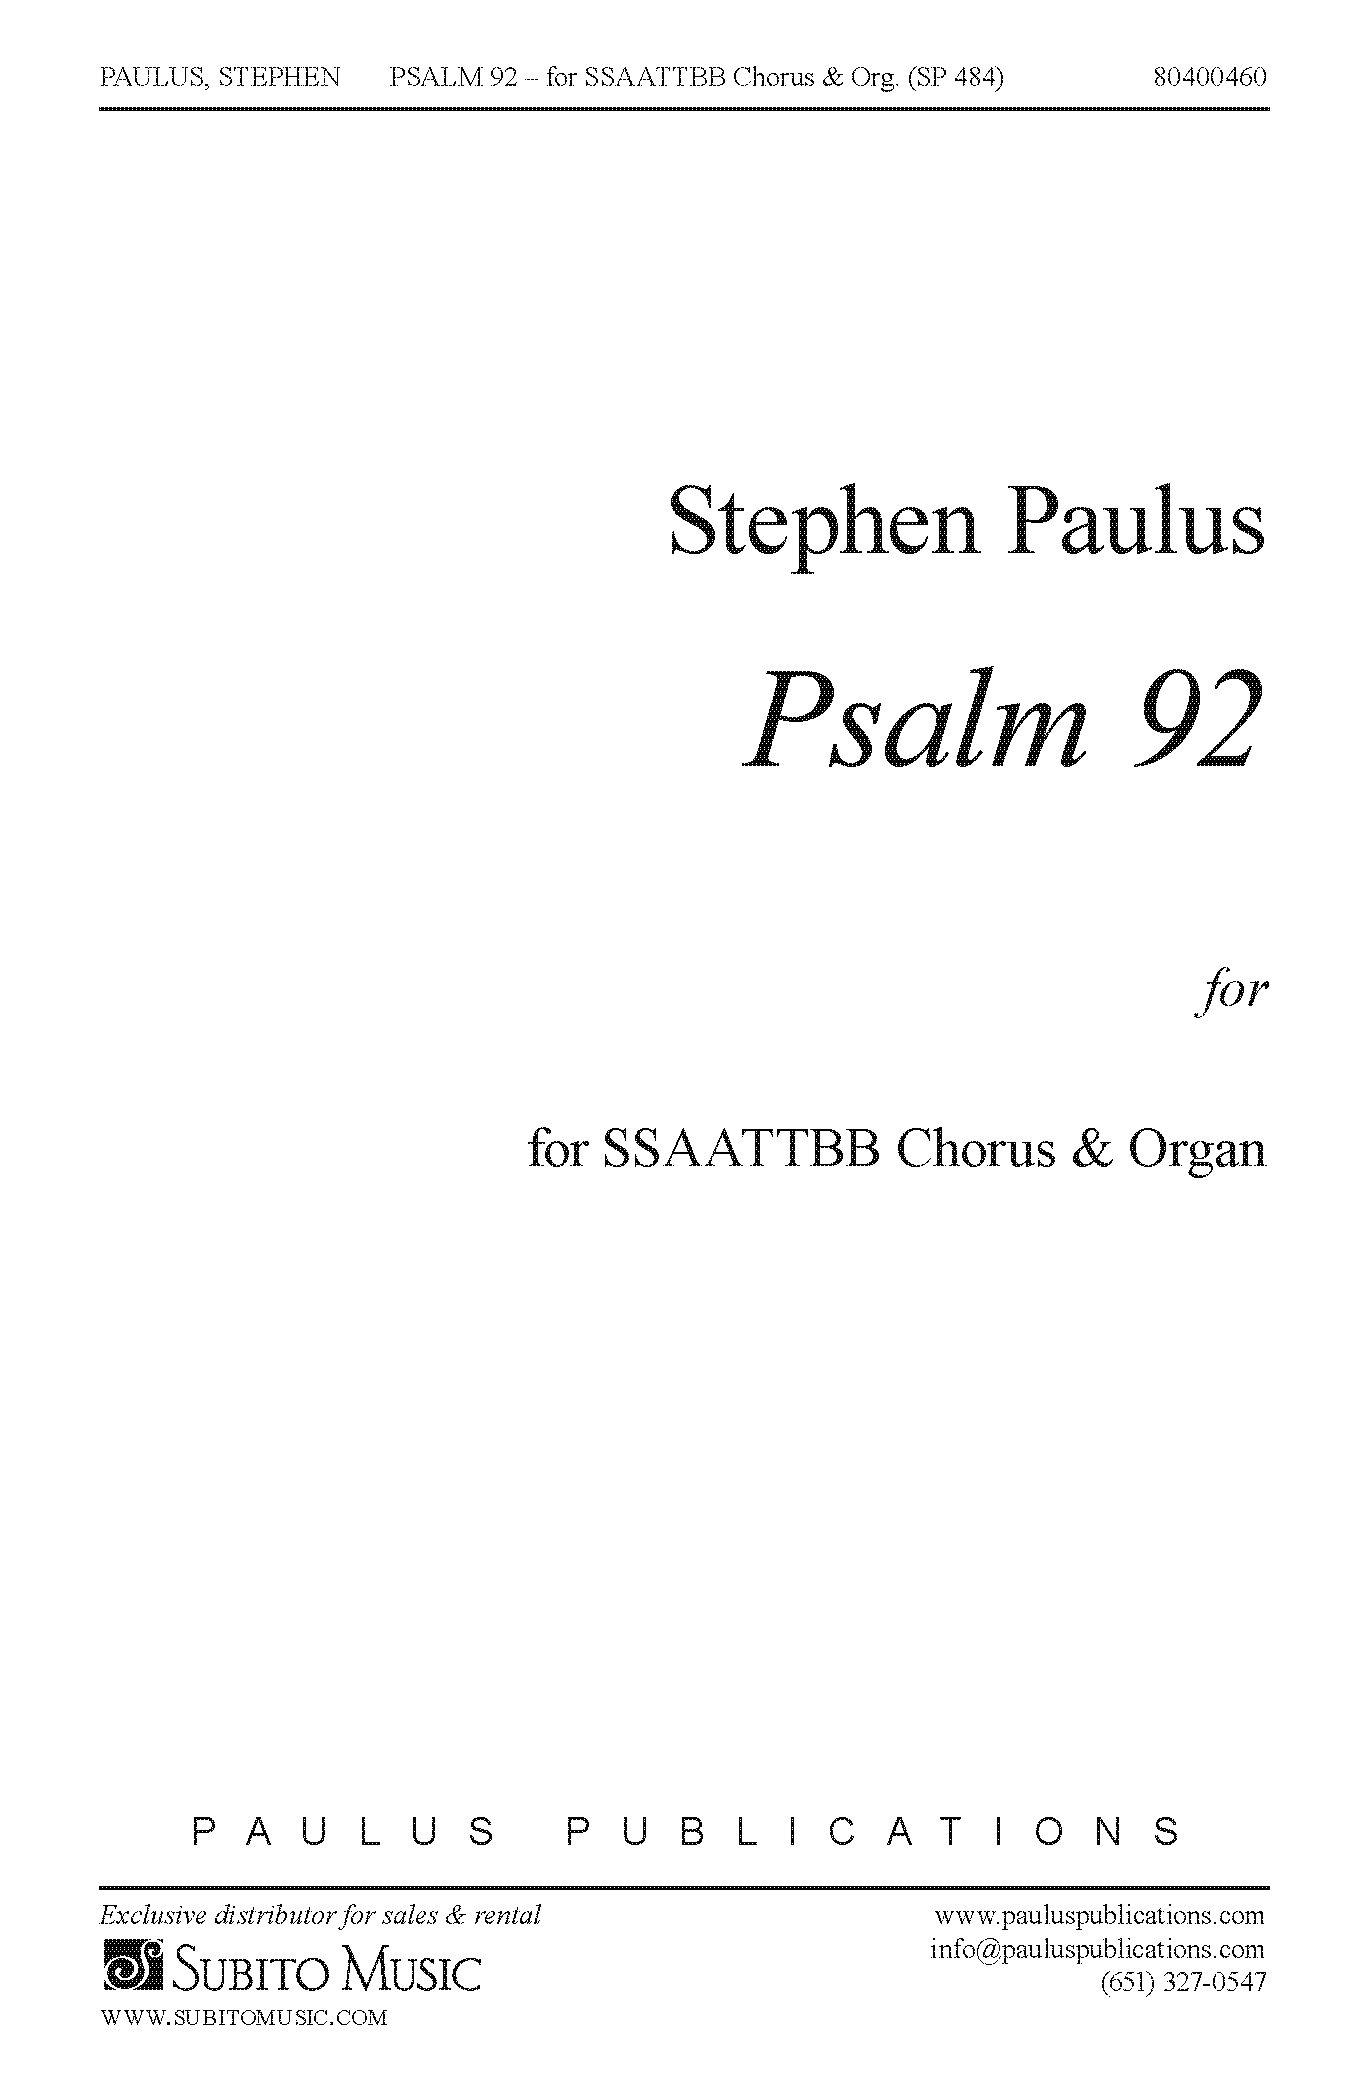 Psalm 92 for SSAATTBB Chorus & Organ